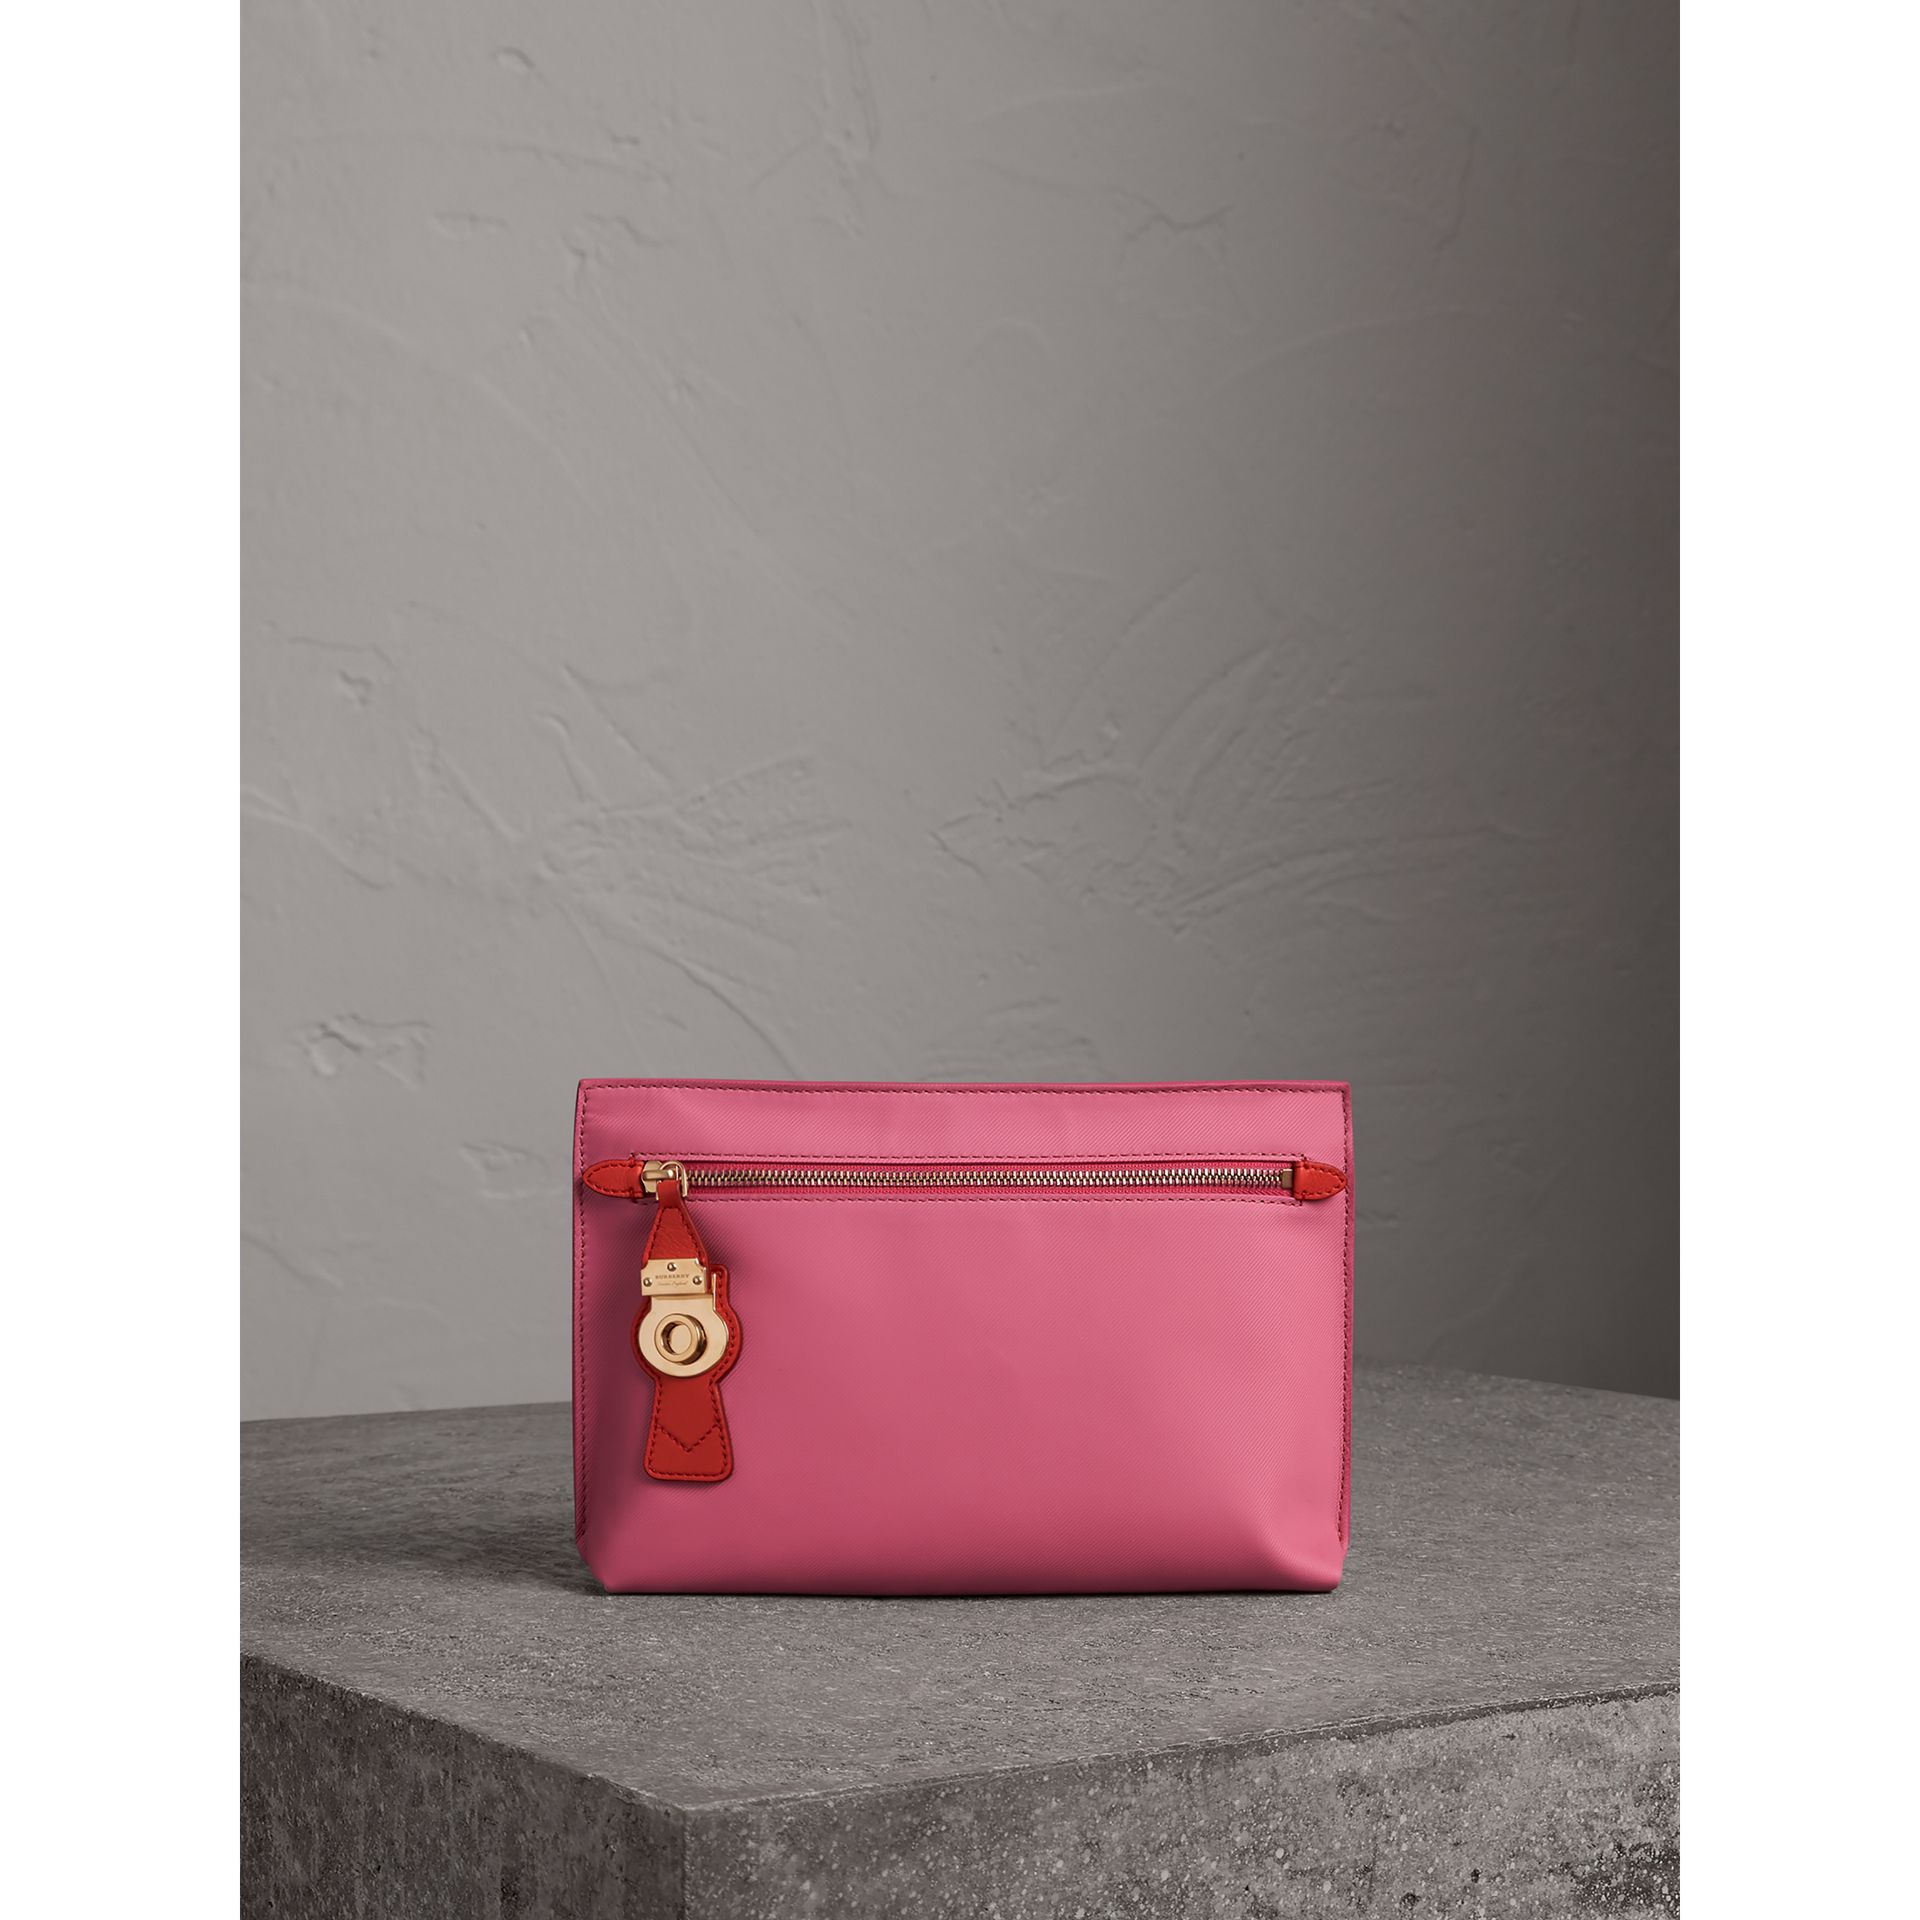 Two-tone Trench Leather Wristlet Pouch in Rose Pink - Women | Burberry Canada - gallery image 0